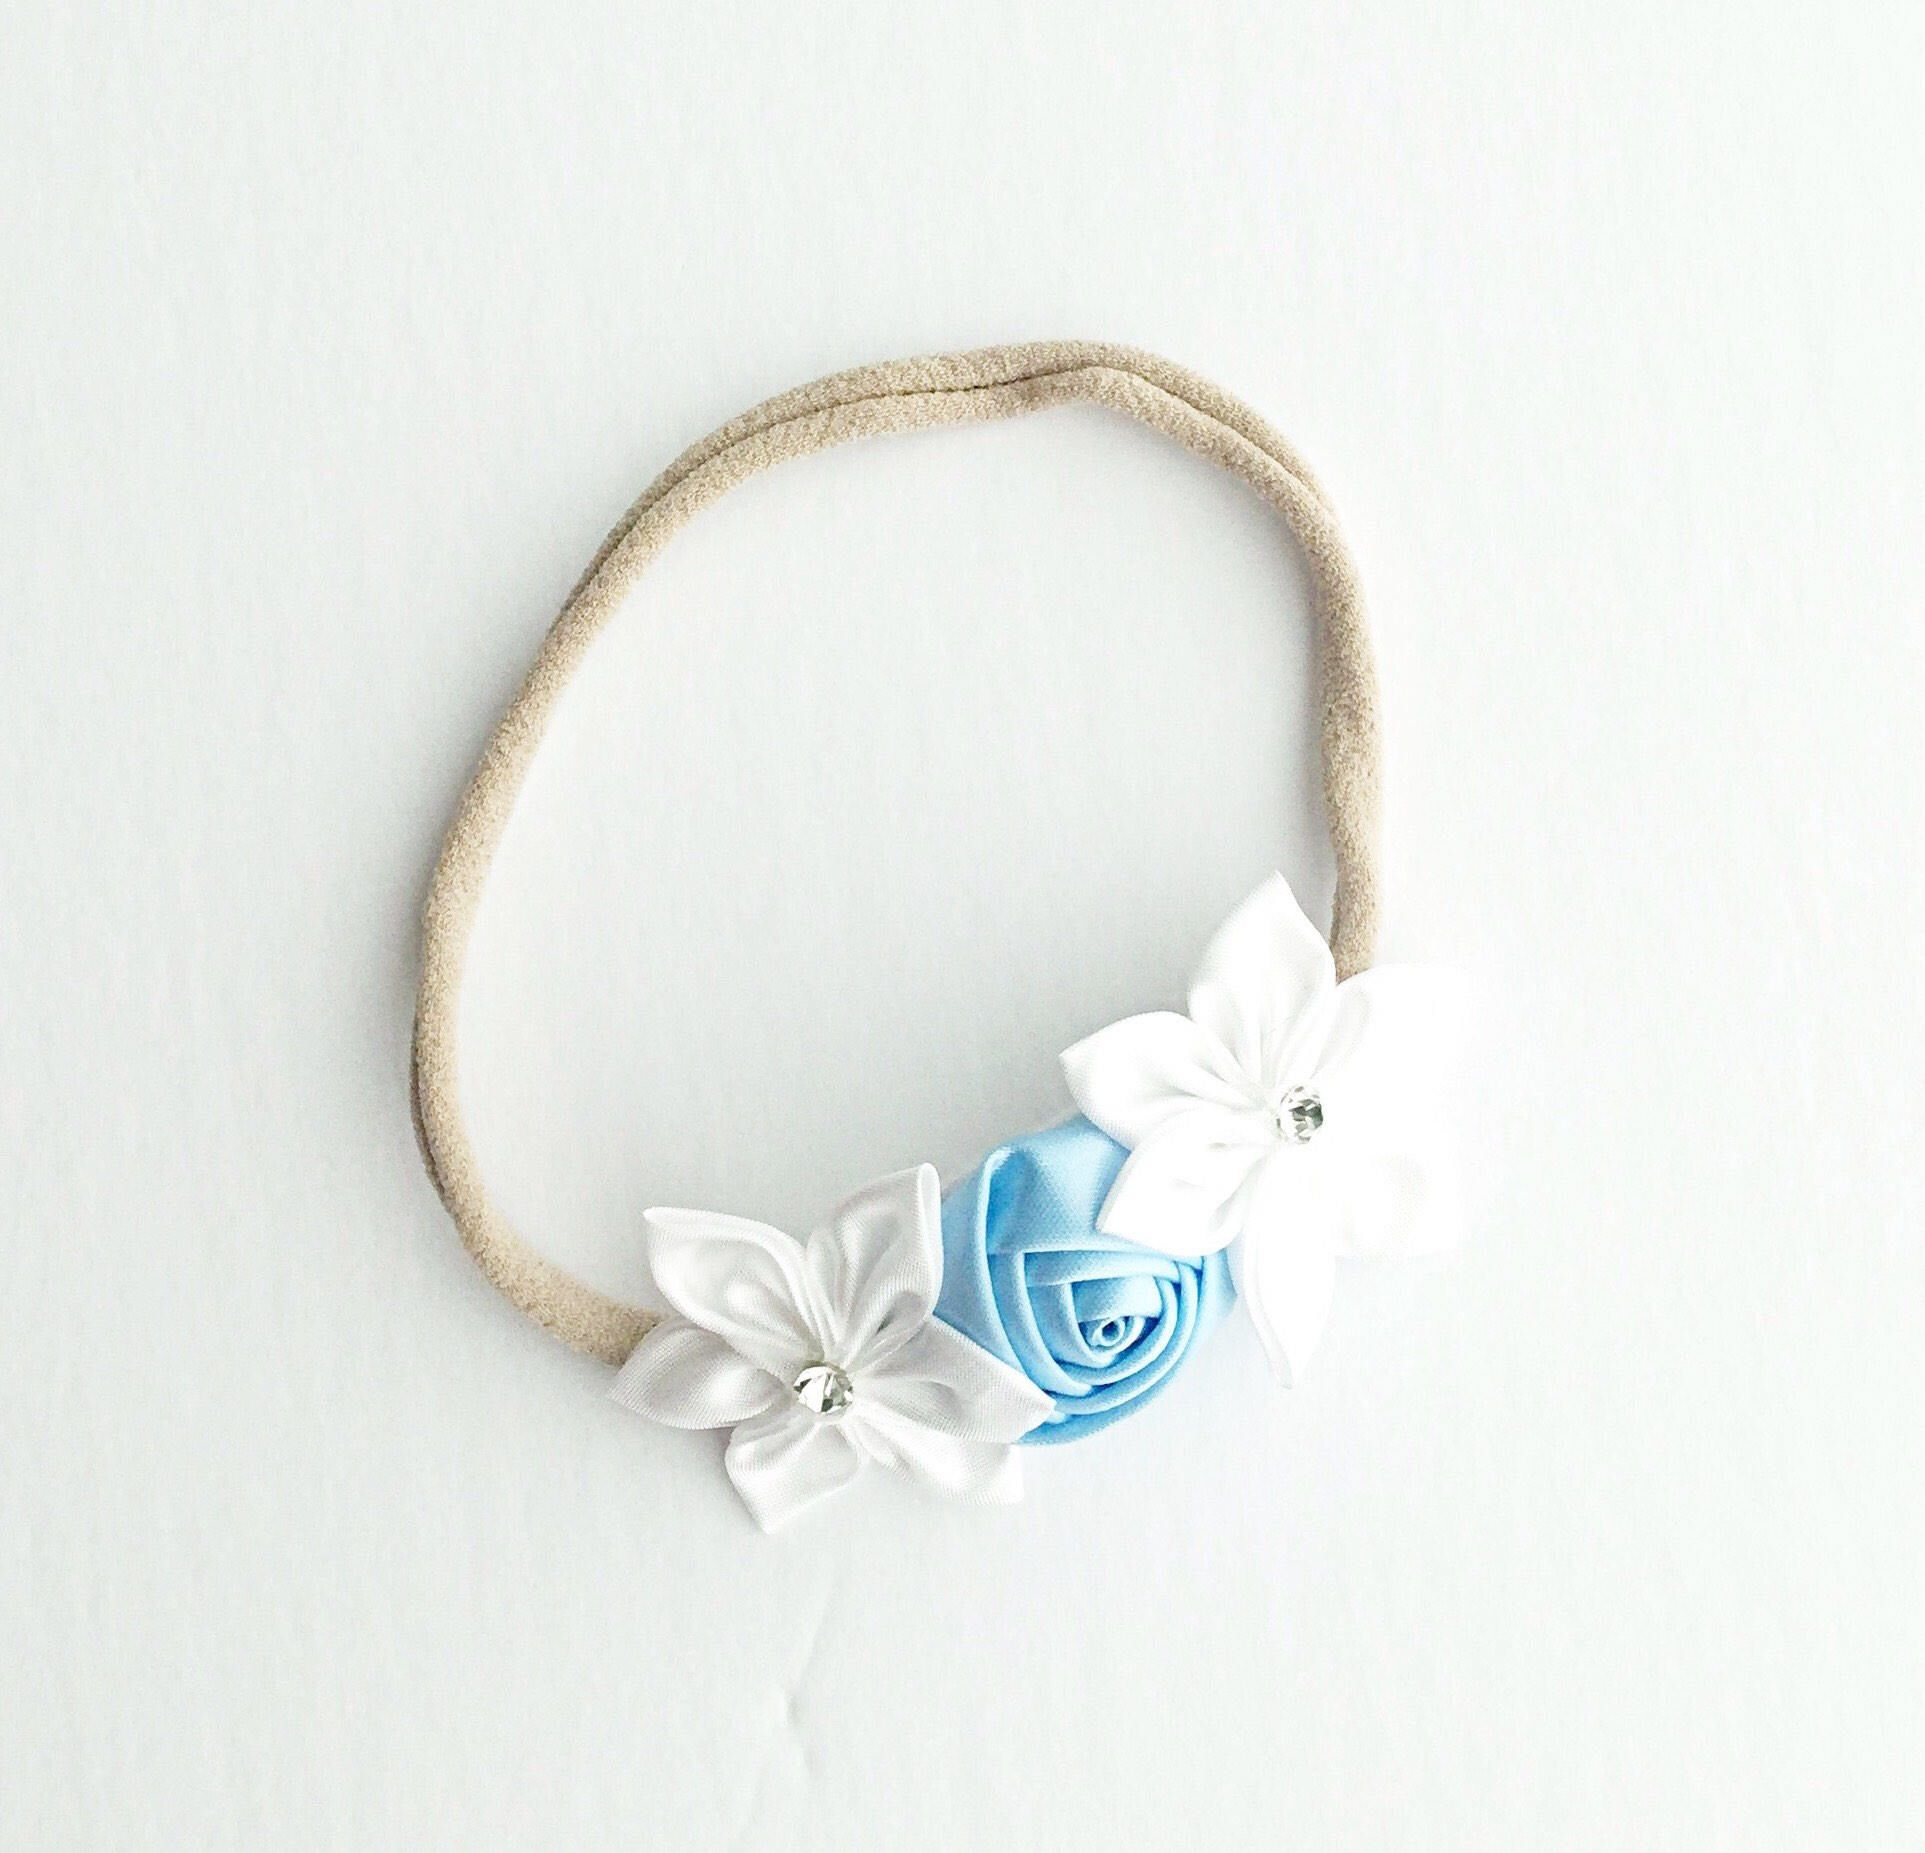 Blue Flower Headband Or Flower Crown With White Flowers And Jewels